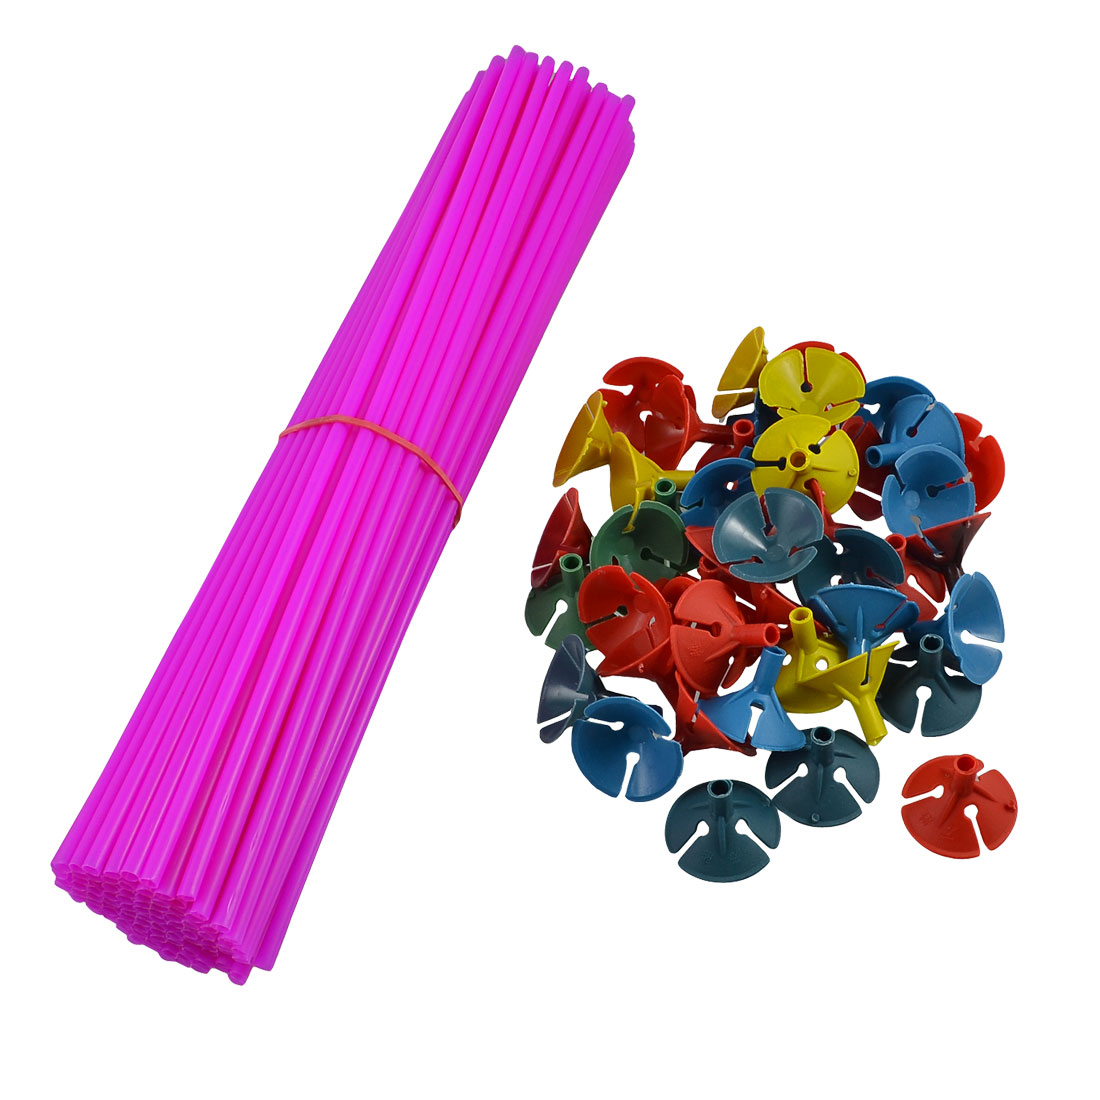 Party Favours Fuchsia Balloon Sticks w Multicolored Holders 100 Pcs